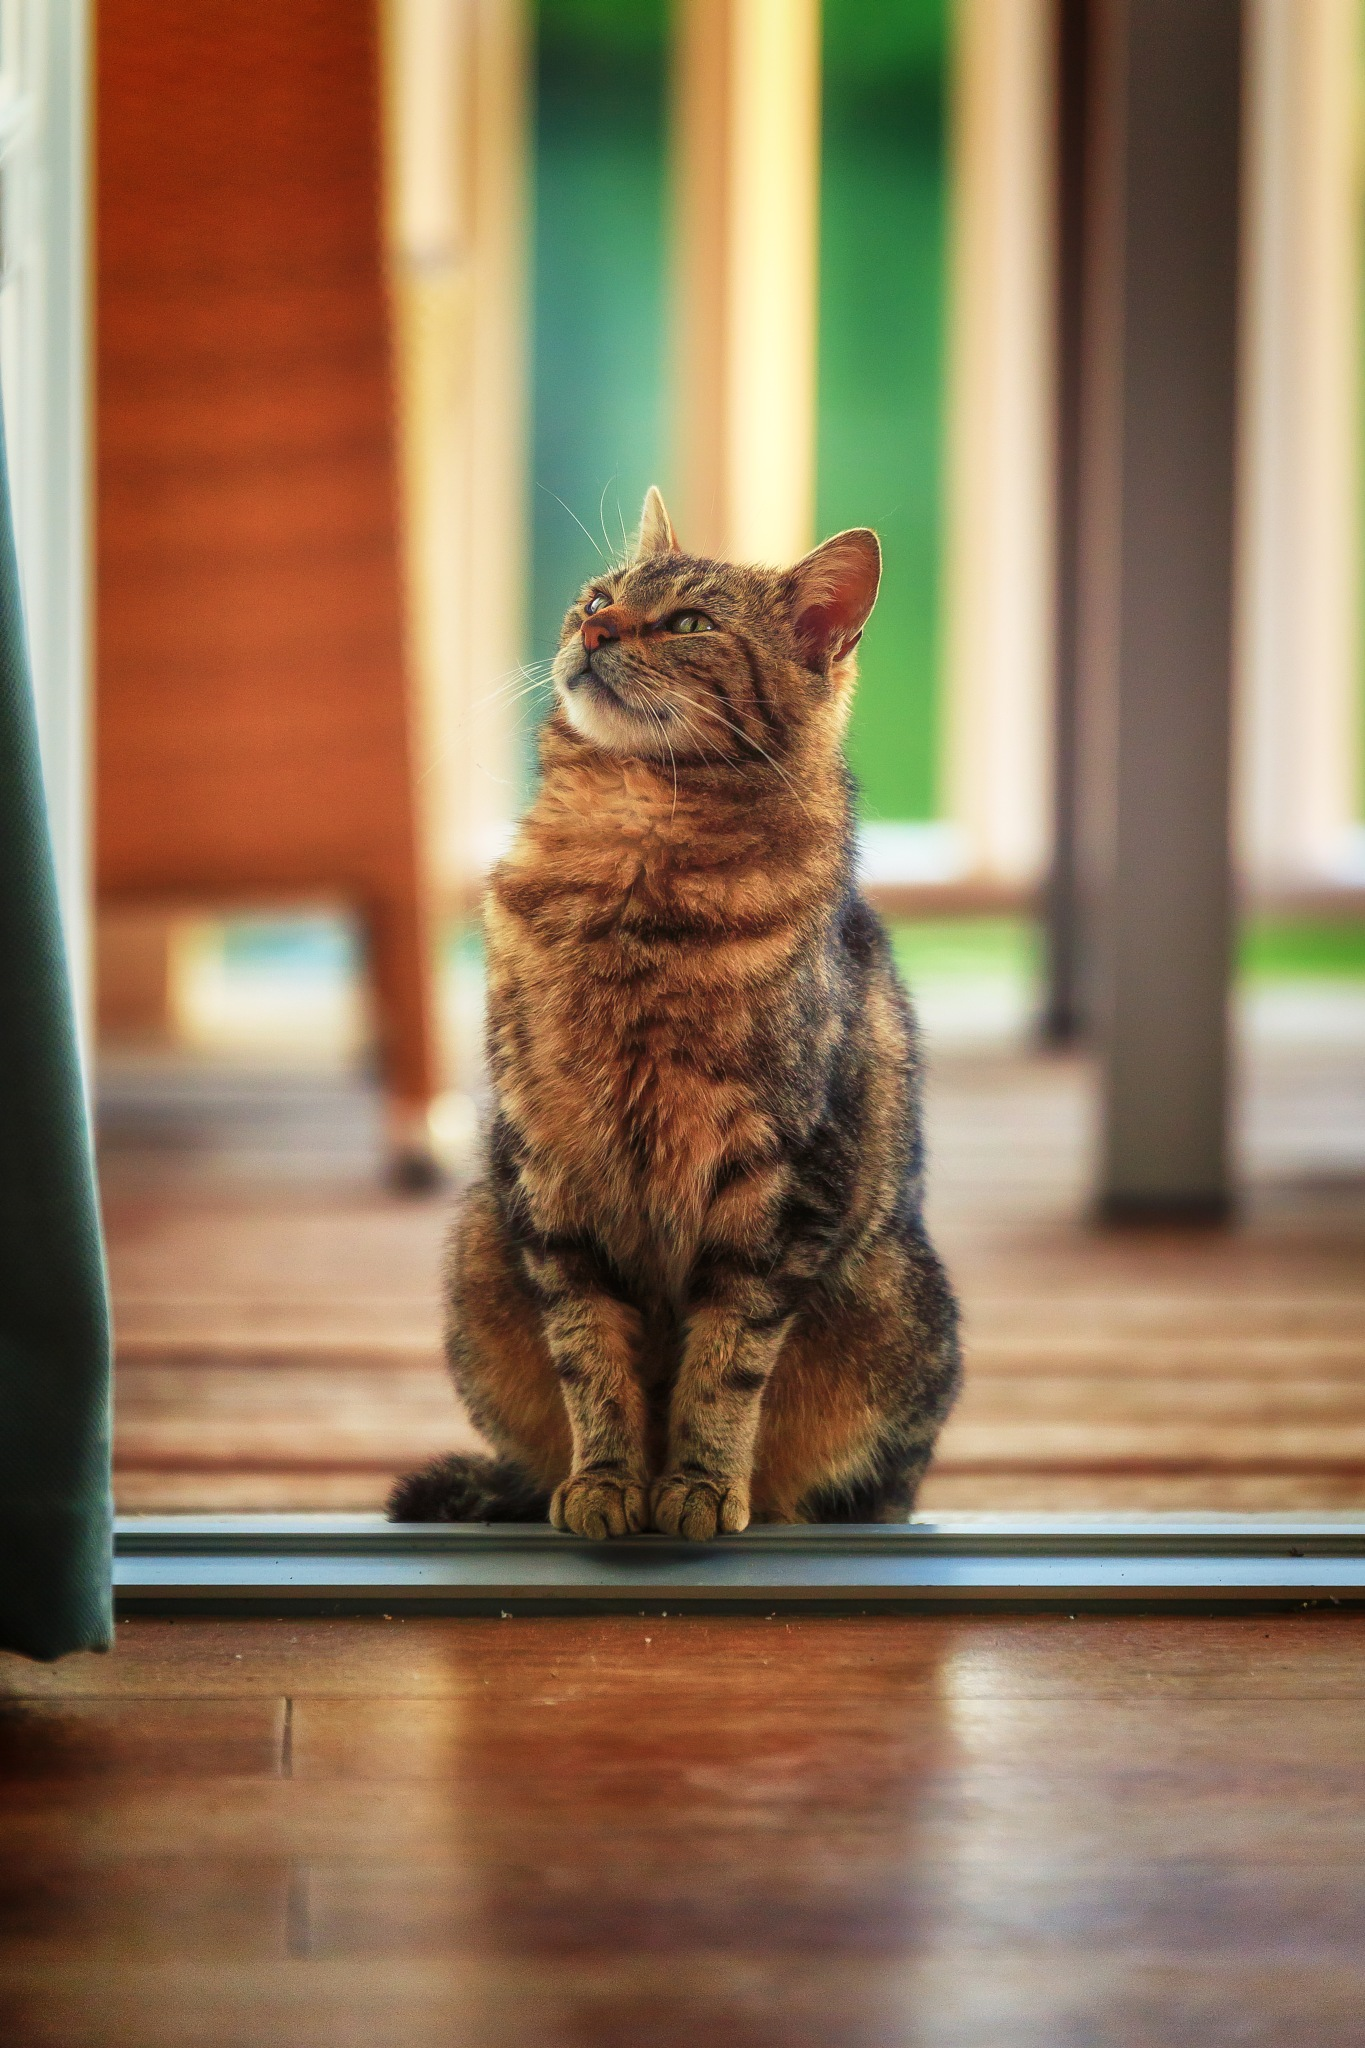 Thinking cat by Chris Butler